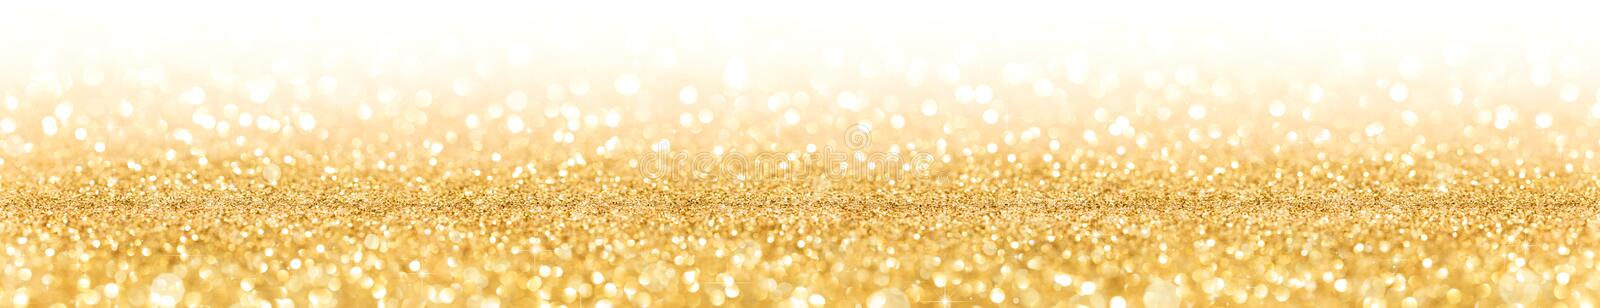 Golden Glitter With Sparkle Of Lights royalty free stock photo